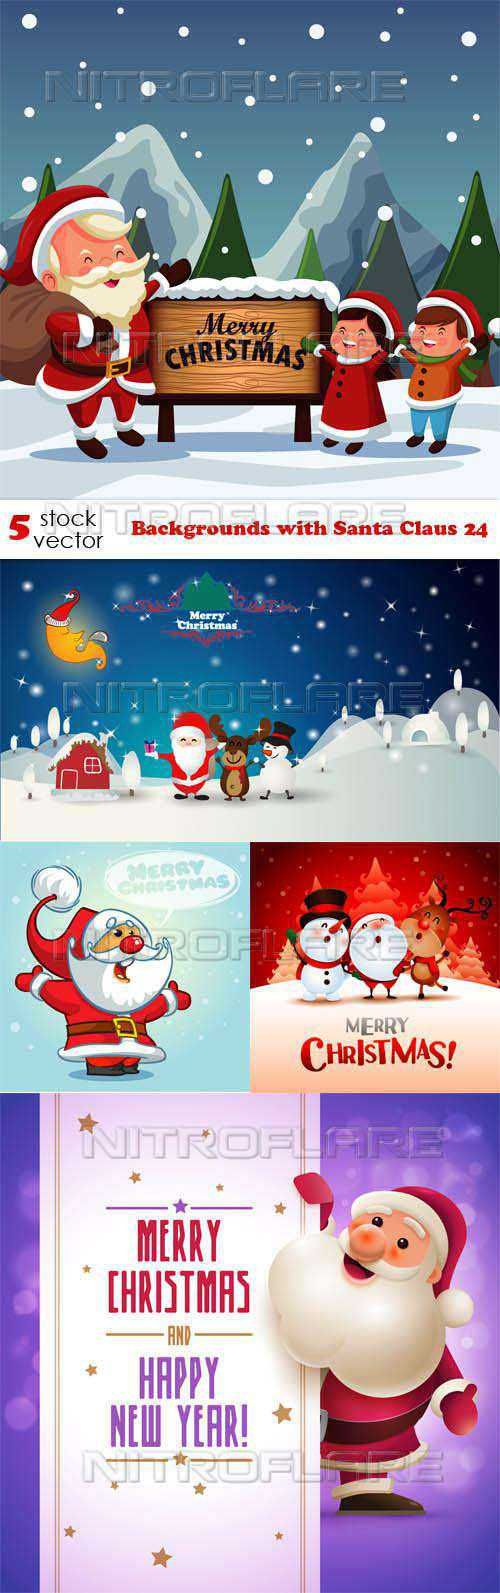 Backgrounds with Santa Claus 24